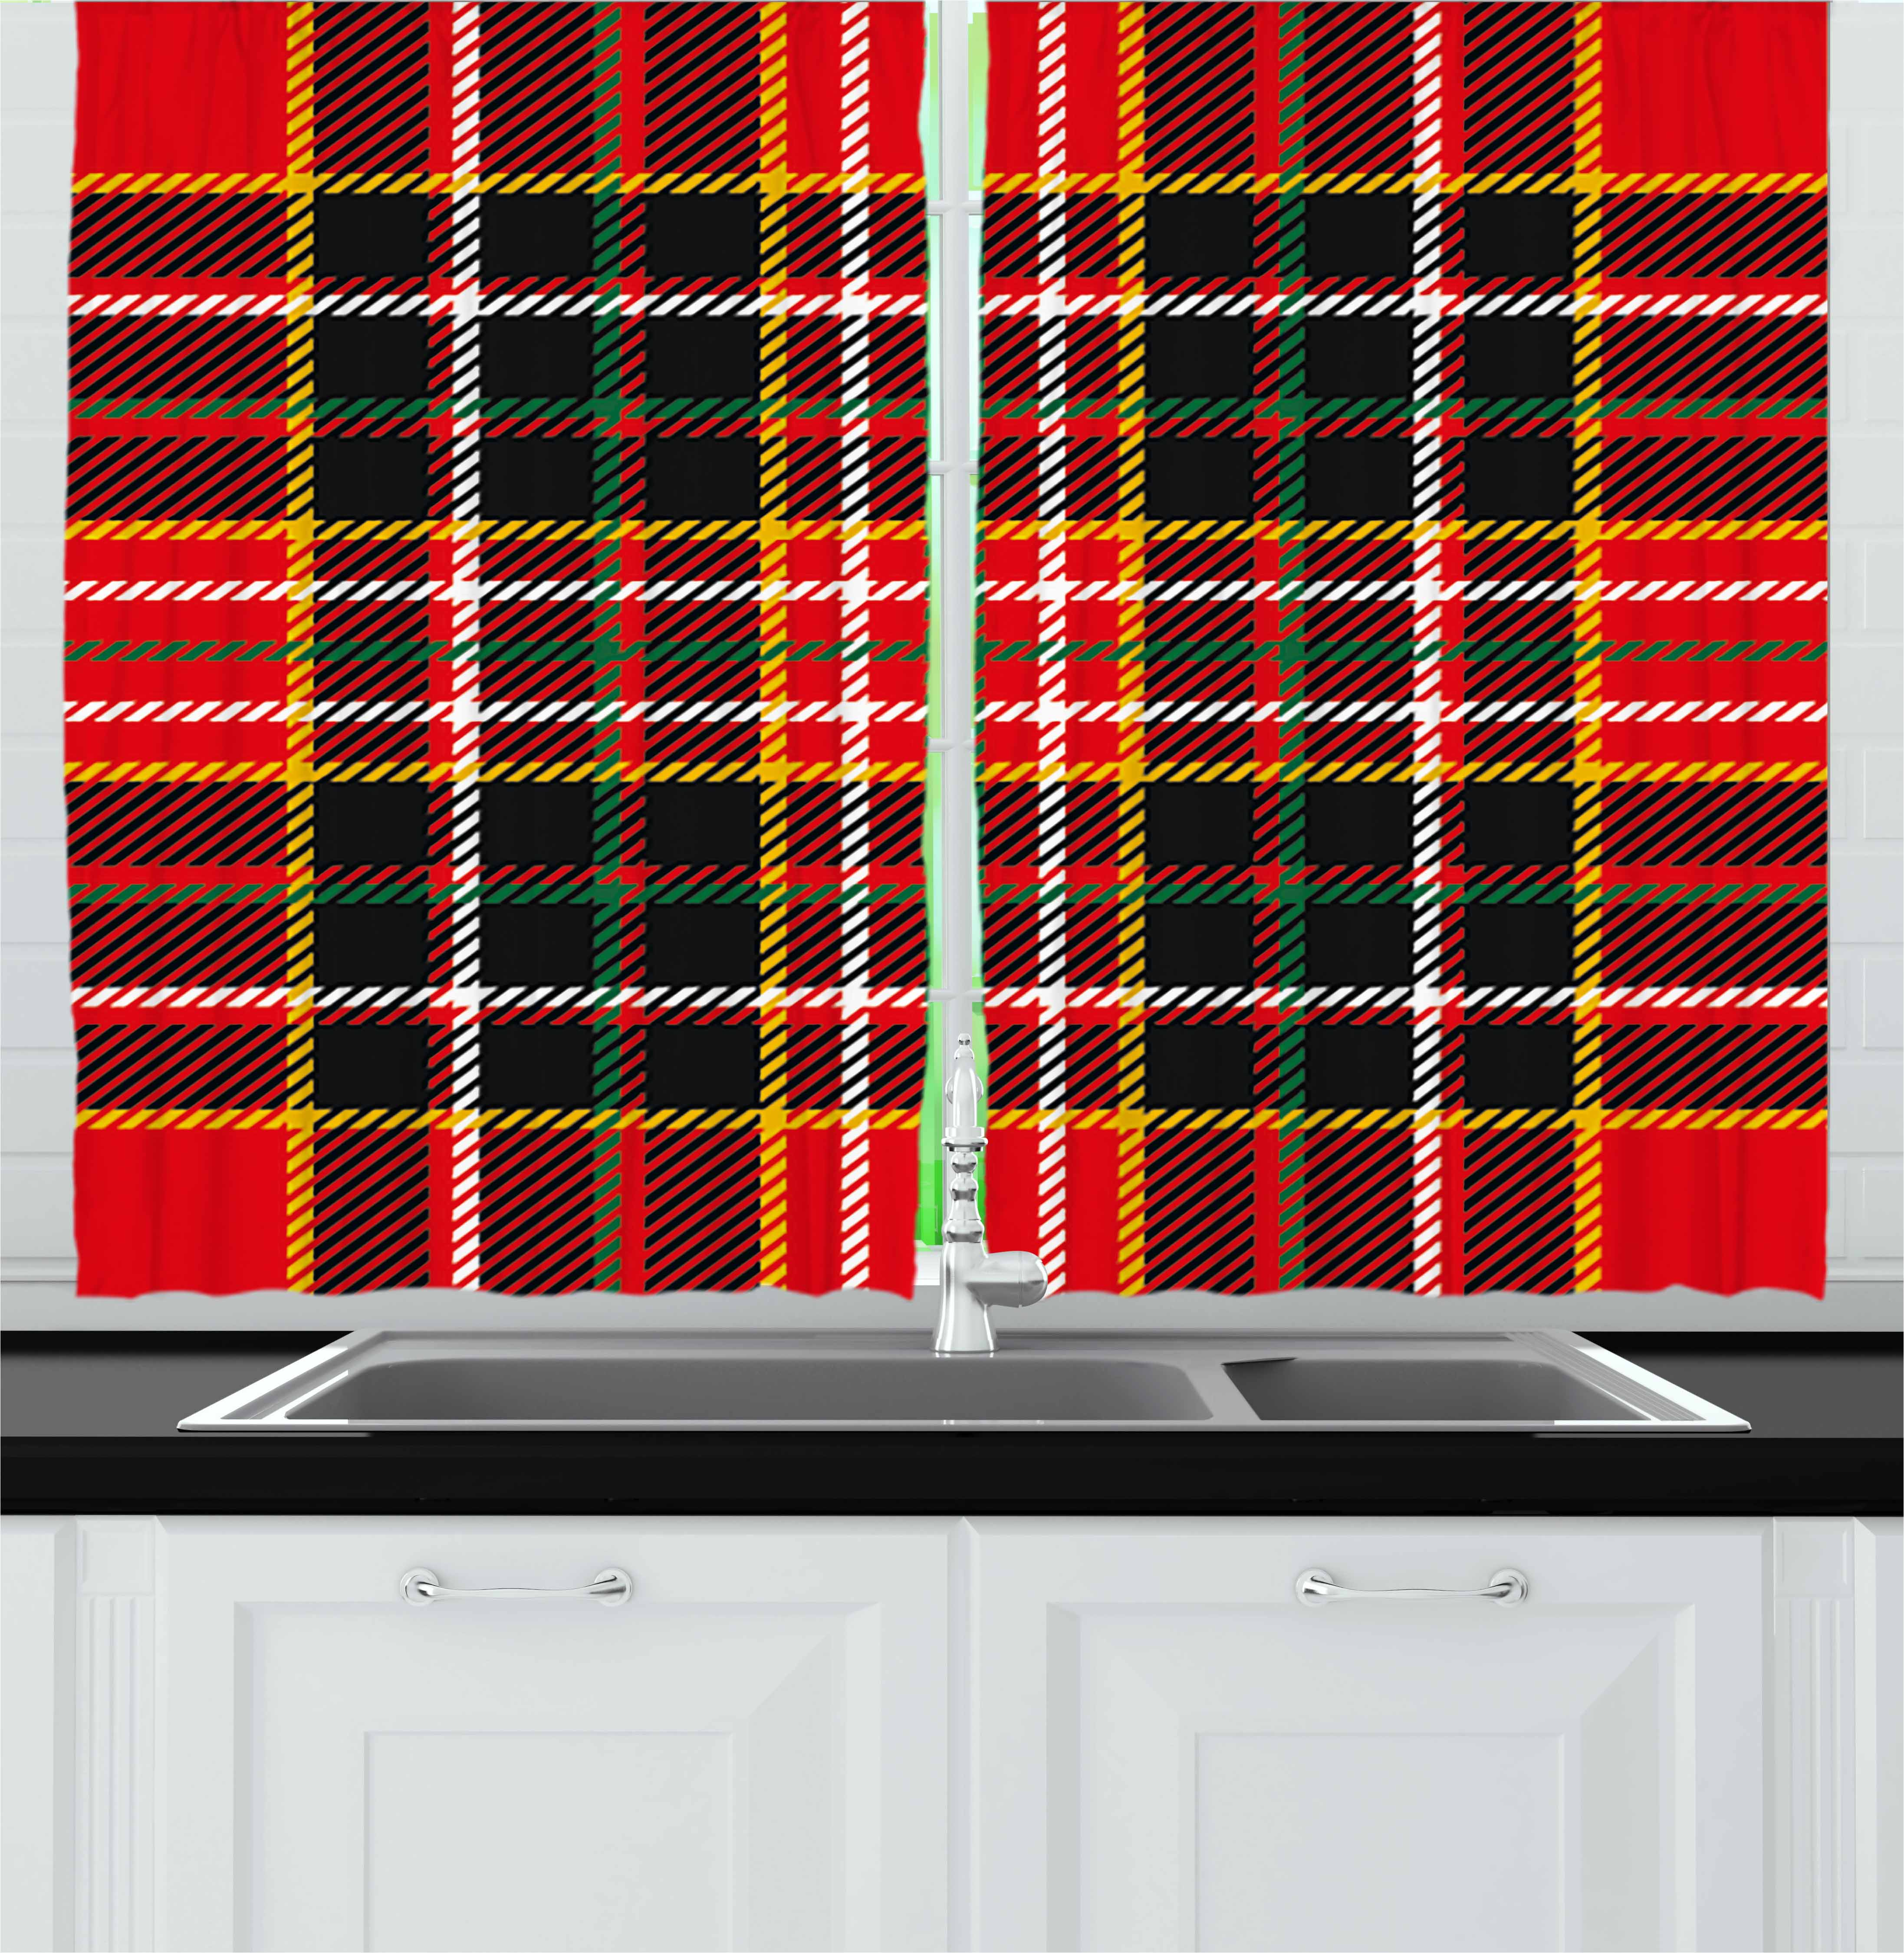 Red Plaid Curtains 2 Panels Set, Vertical and Horizontal Lines Tartan Backdrop Scottish Culture Inspired Pattern, Window Drapes for Living Room Bedroom, 55W X 39L Inches, Multicolor, by Ambesonne